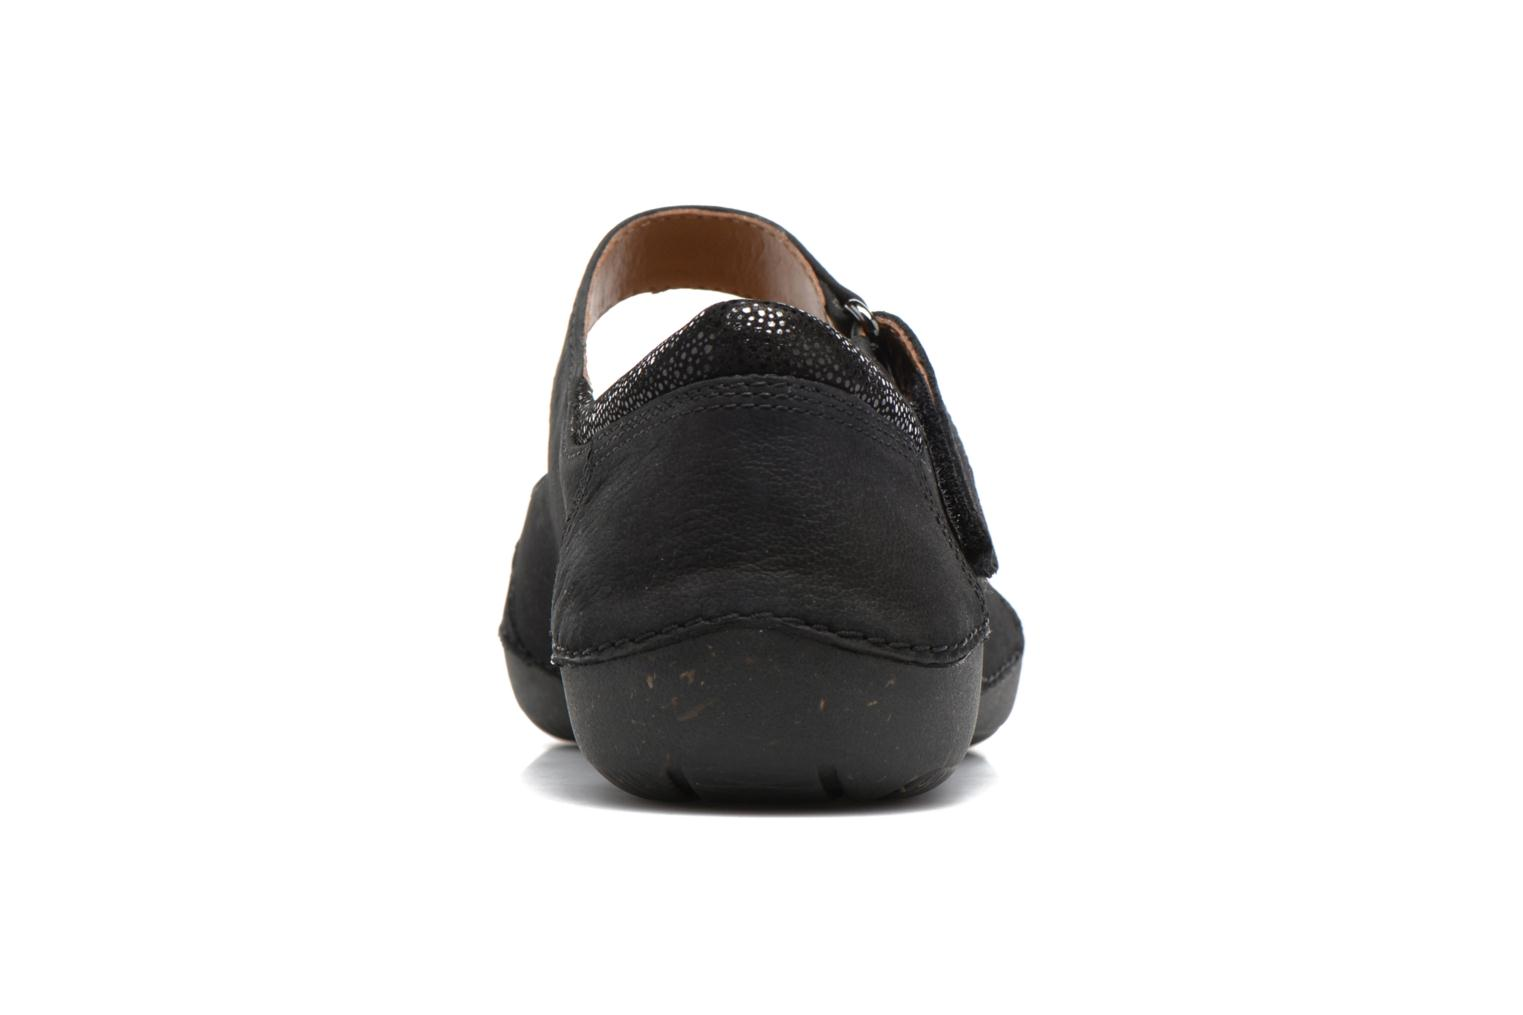 Autumn Stone Black Nubuck